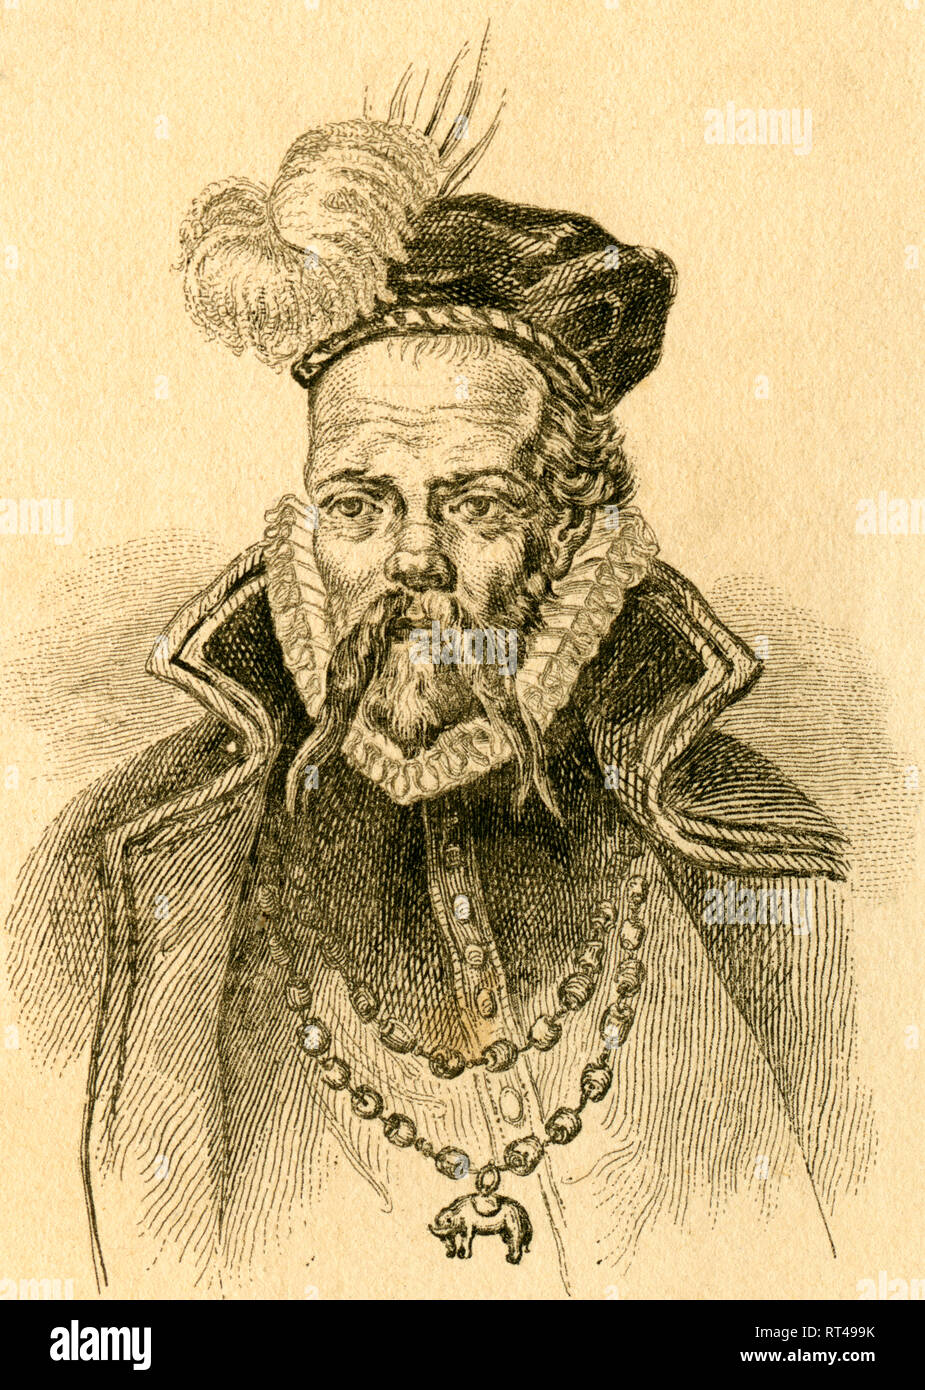 Tycho Brahe, Danish nobleman and astronomer, steel engraving from an book or magazine, about 1830th., Artist's Copyright has not to be cleared - Stock Image